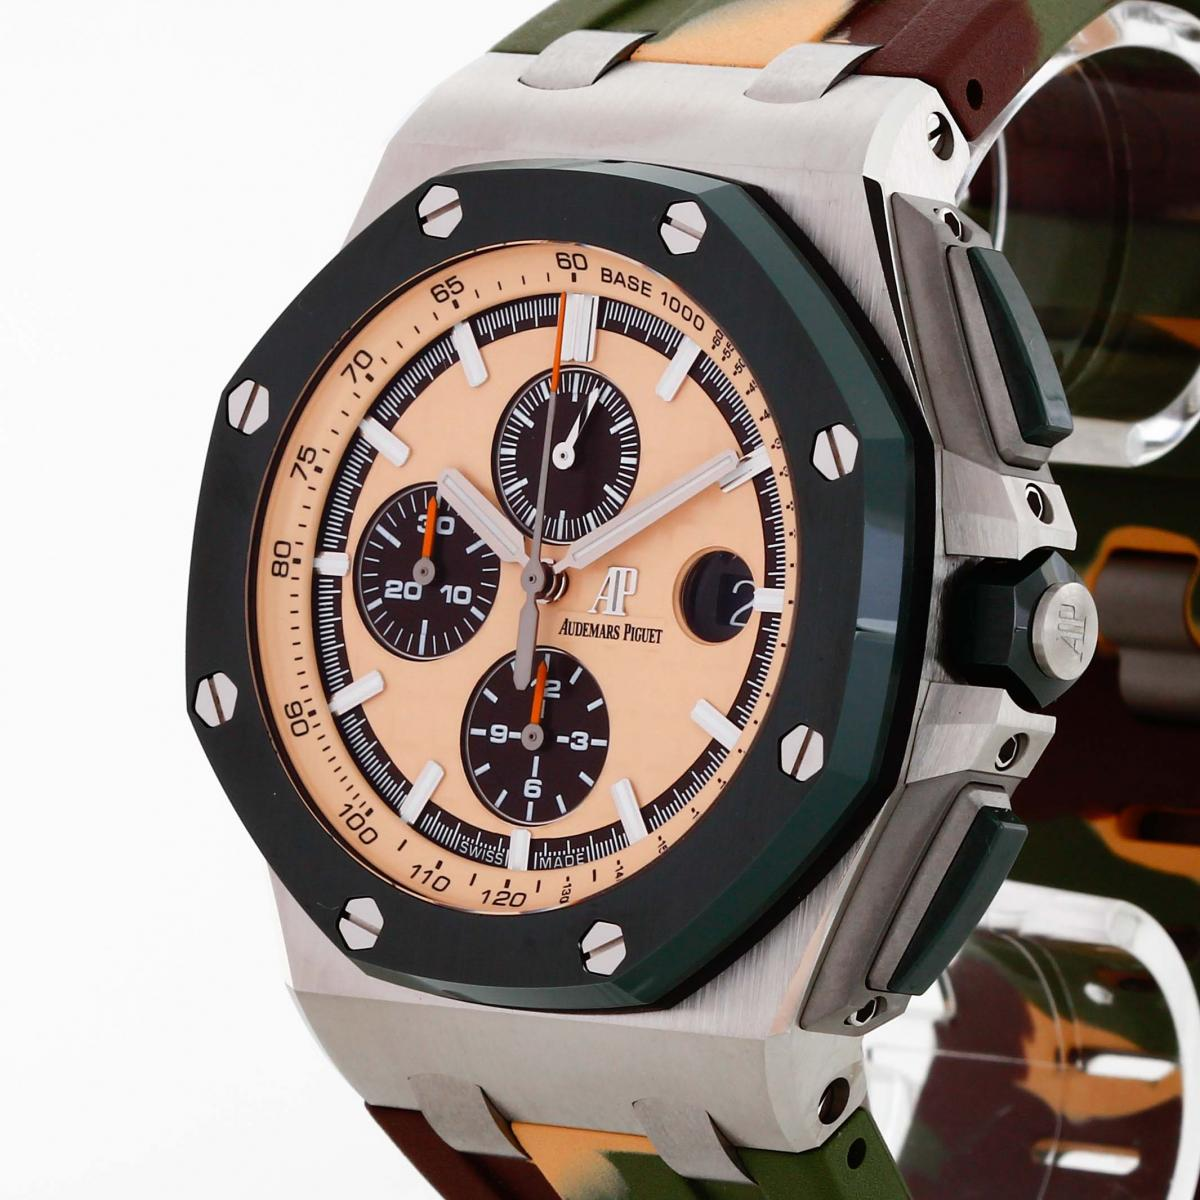 685f0ebf96f Audemars Piguet Royal Oak Offshore Camouflage Chronograph 44mm Ref.  26400SO.OO.A054CA.01-183600